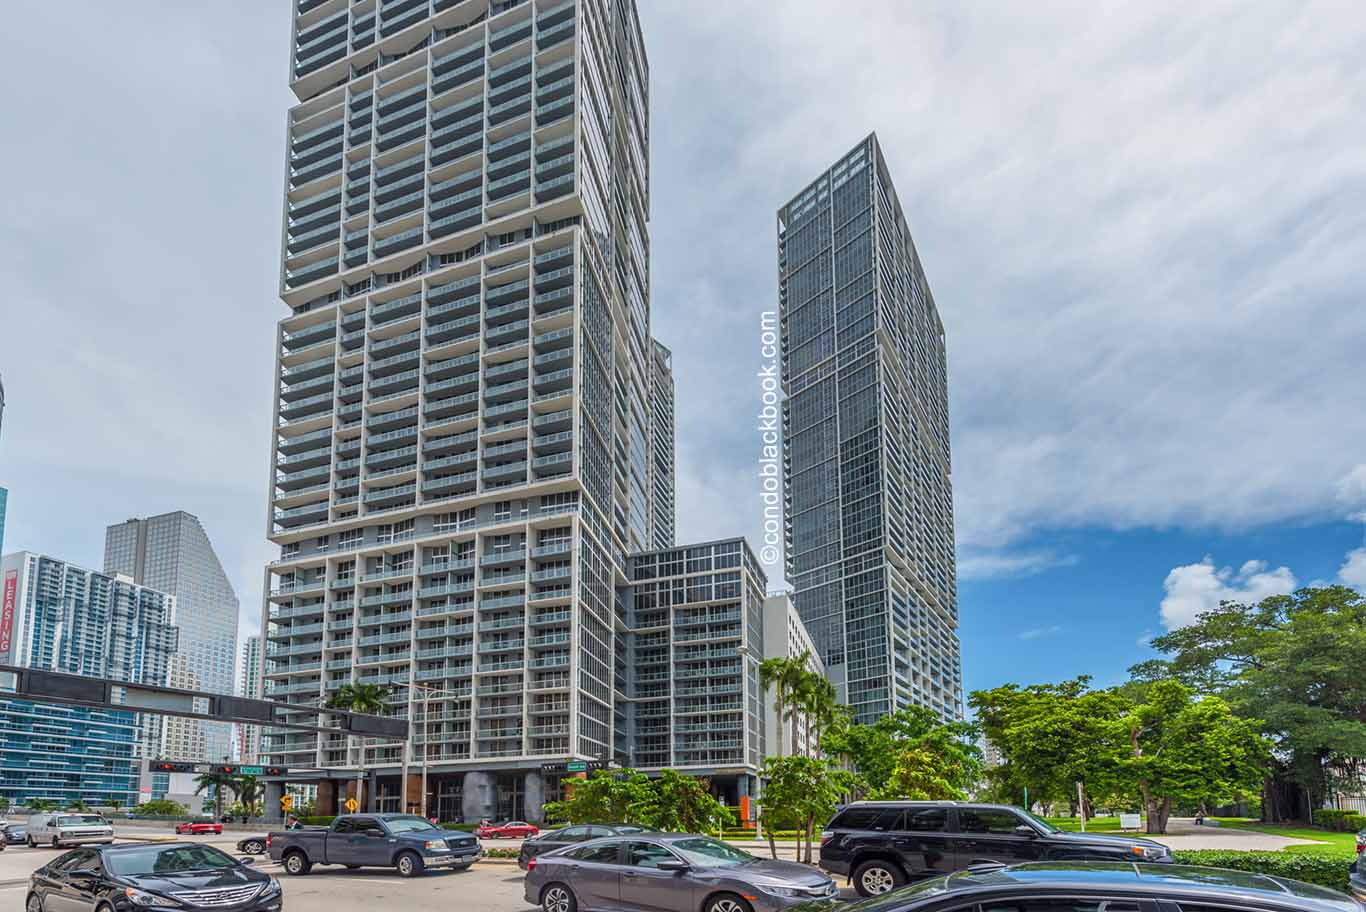 The Excitement Doubles at Icon Brickell as Two Restaurants Sign on